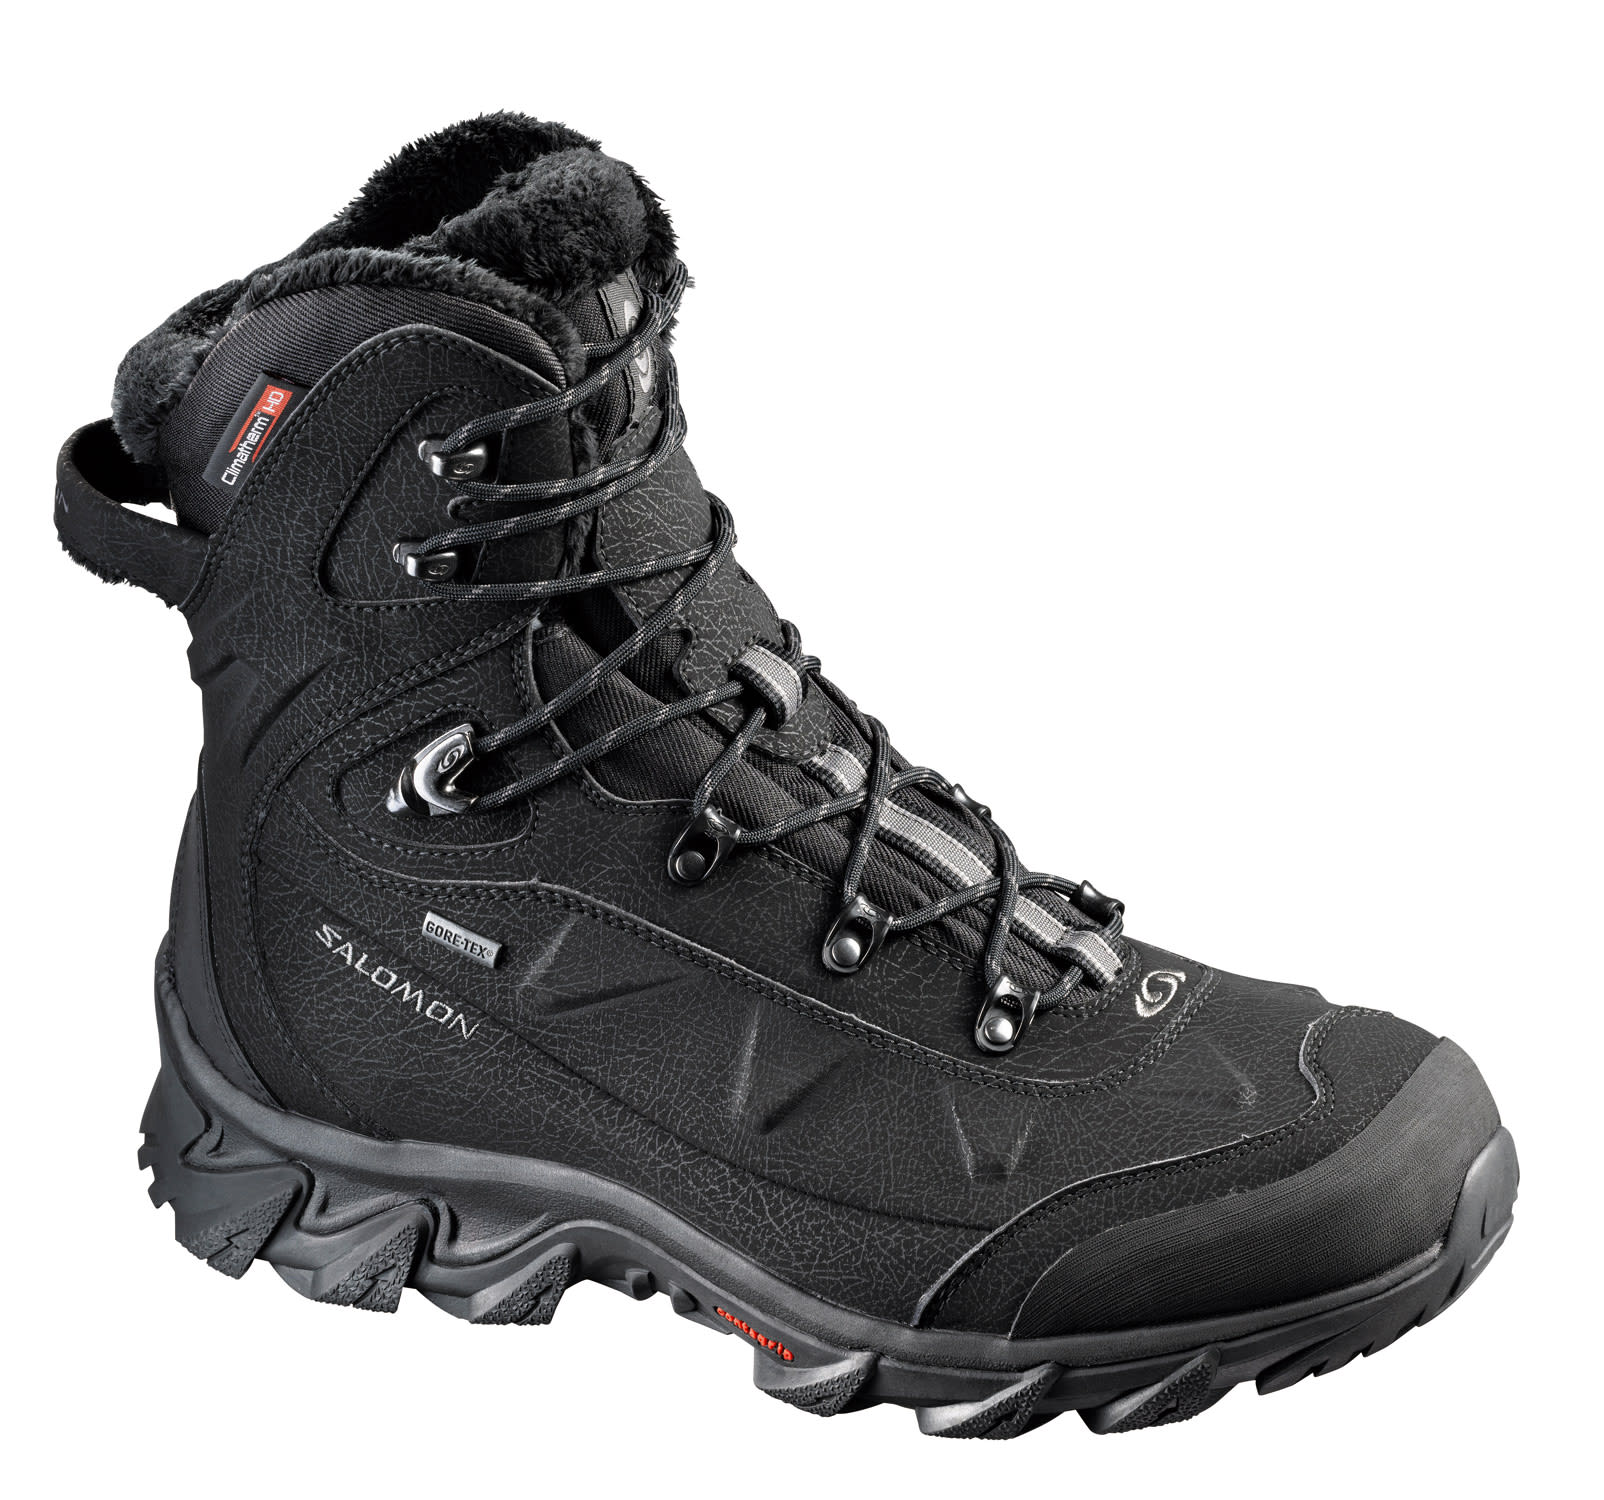 Salomon Nytro GTX Lady